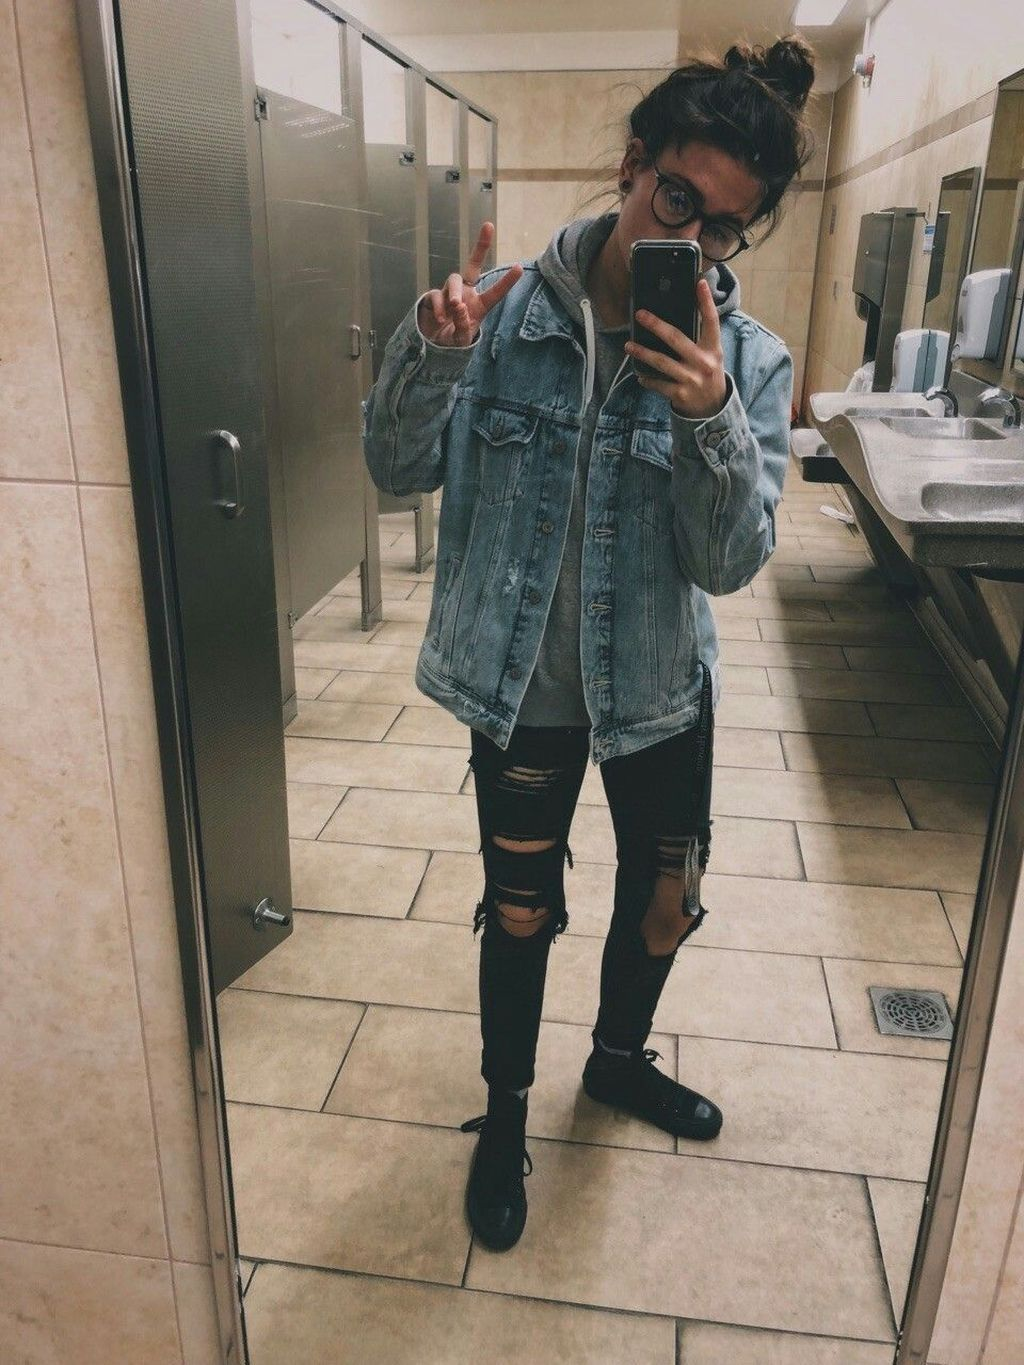 Tomboy Outfits Swag Tomboy Outfits In 2020 Tomboy Style Outfits Tomboy Fashion Lesbian Outfits